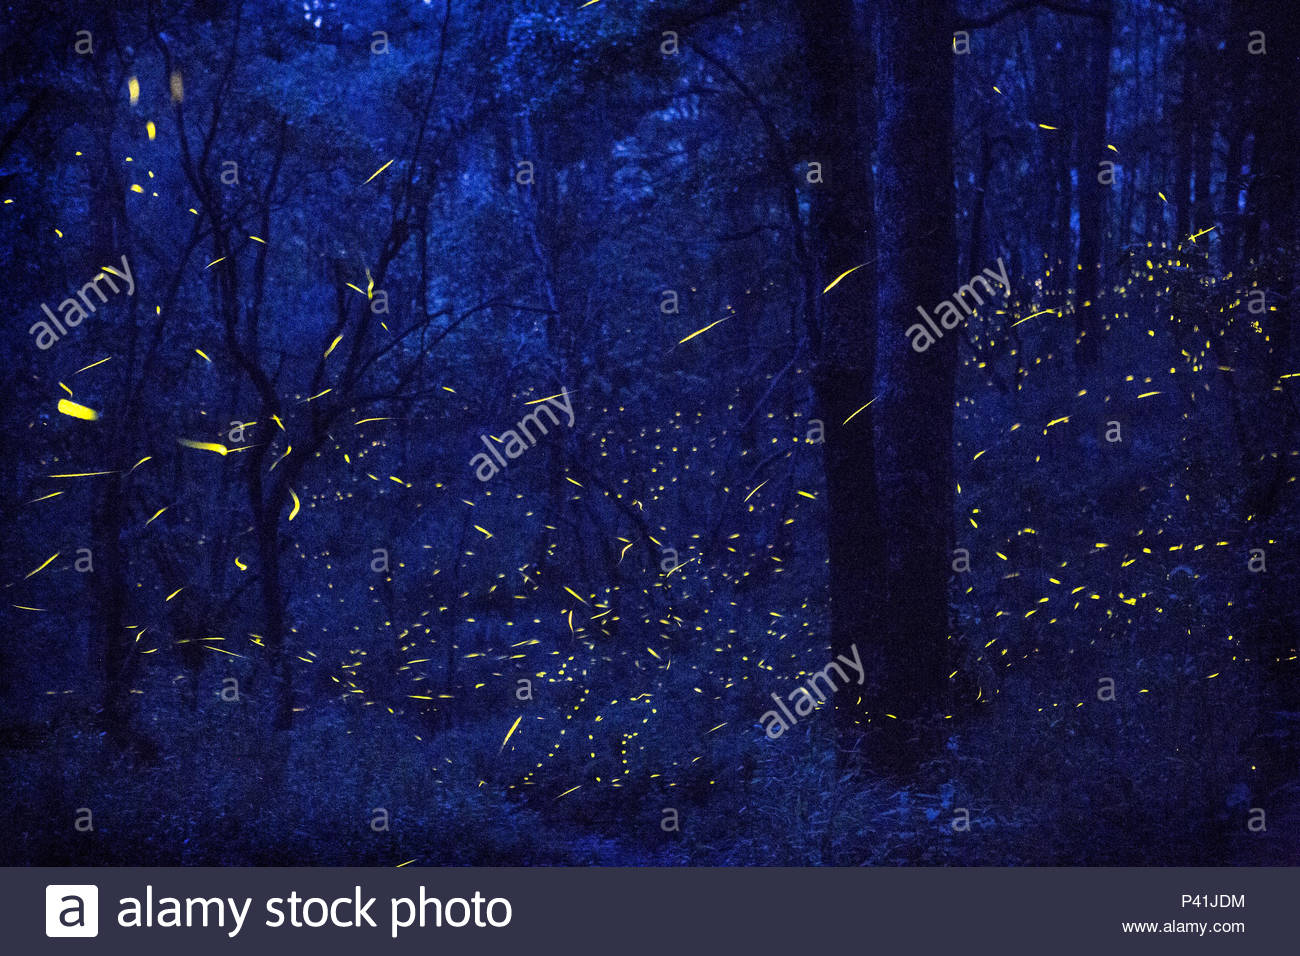 Fireflies in flight in the forest at Santa Clara Sanctuary. - Stock Image